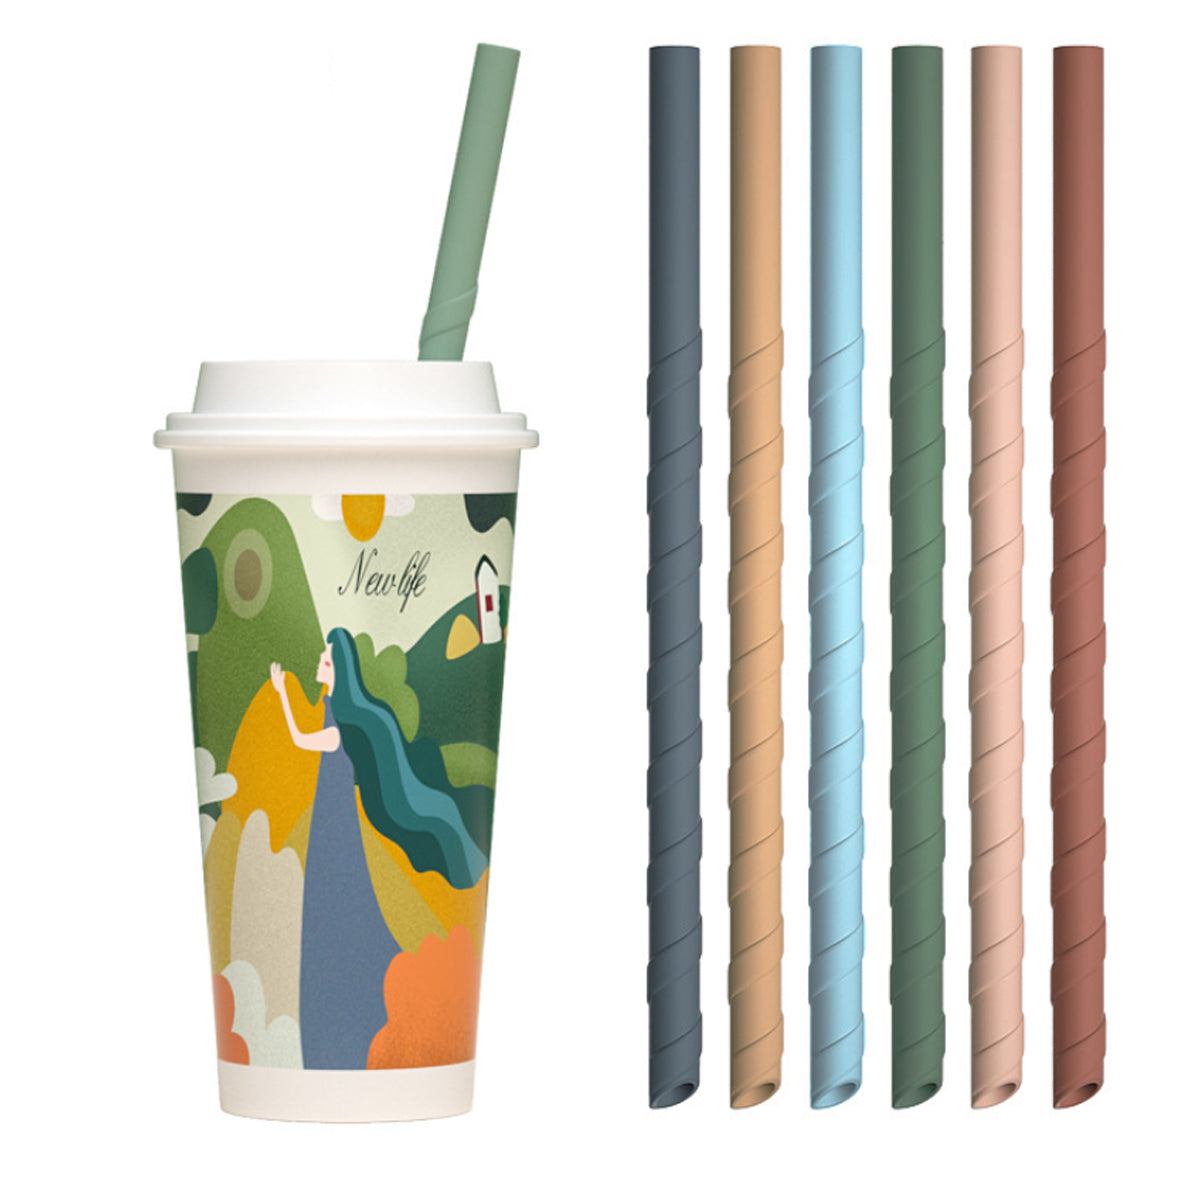 shopify-Eco Safe 8 In 1 Silicon Reusable Straws For HOT/COLD Drinks-1